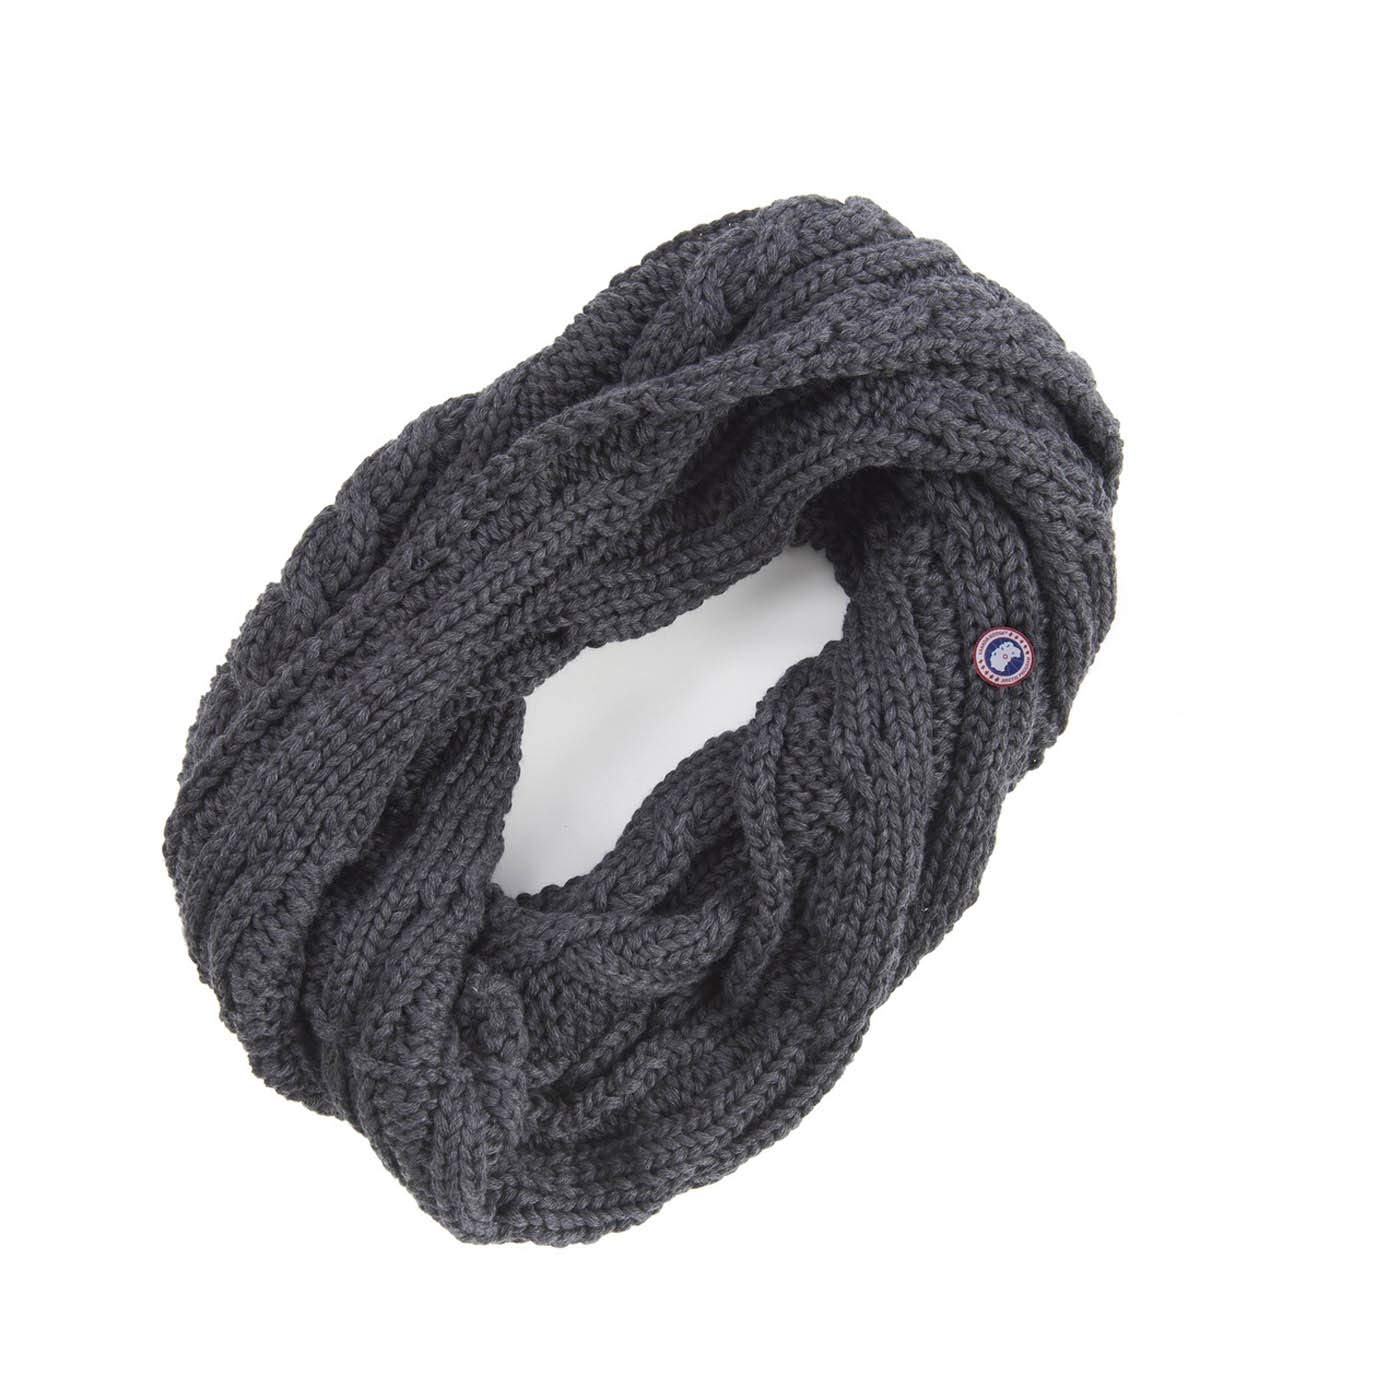 Canada Goose Merino Chunky Cable Snood Graphite 5313L One Size by Canada Goose (Image #1)